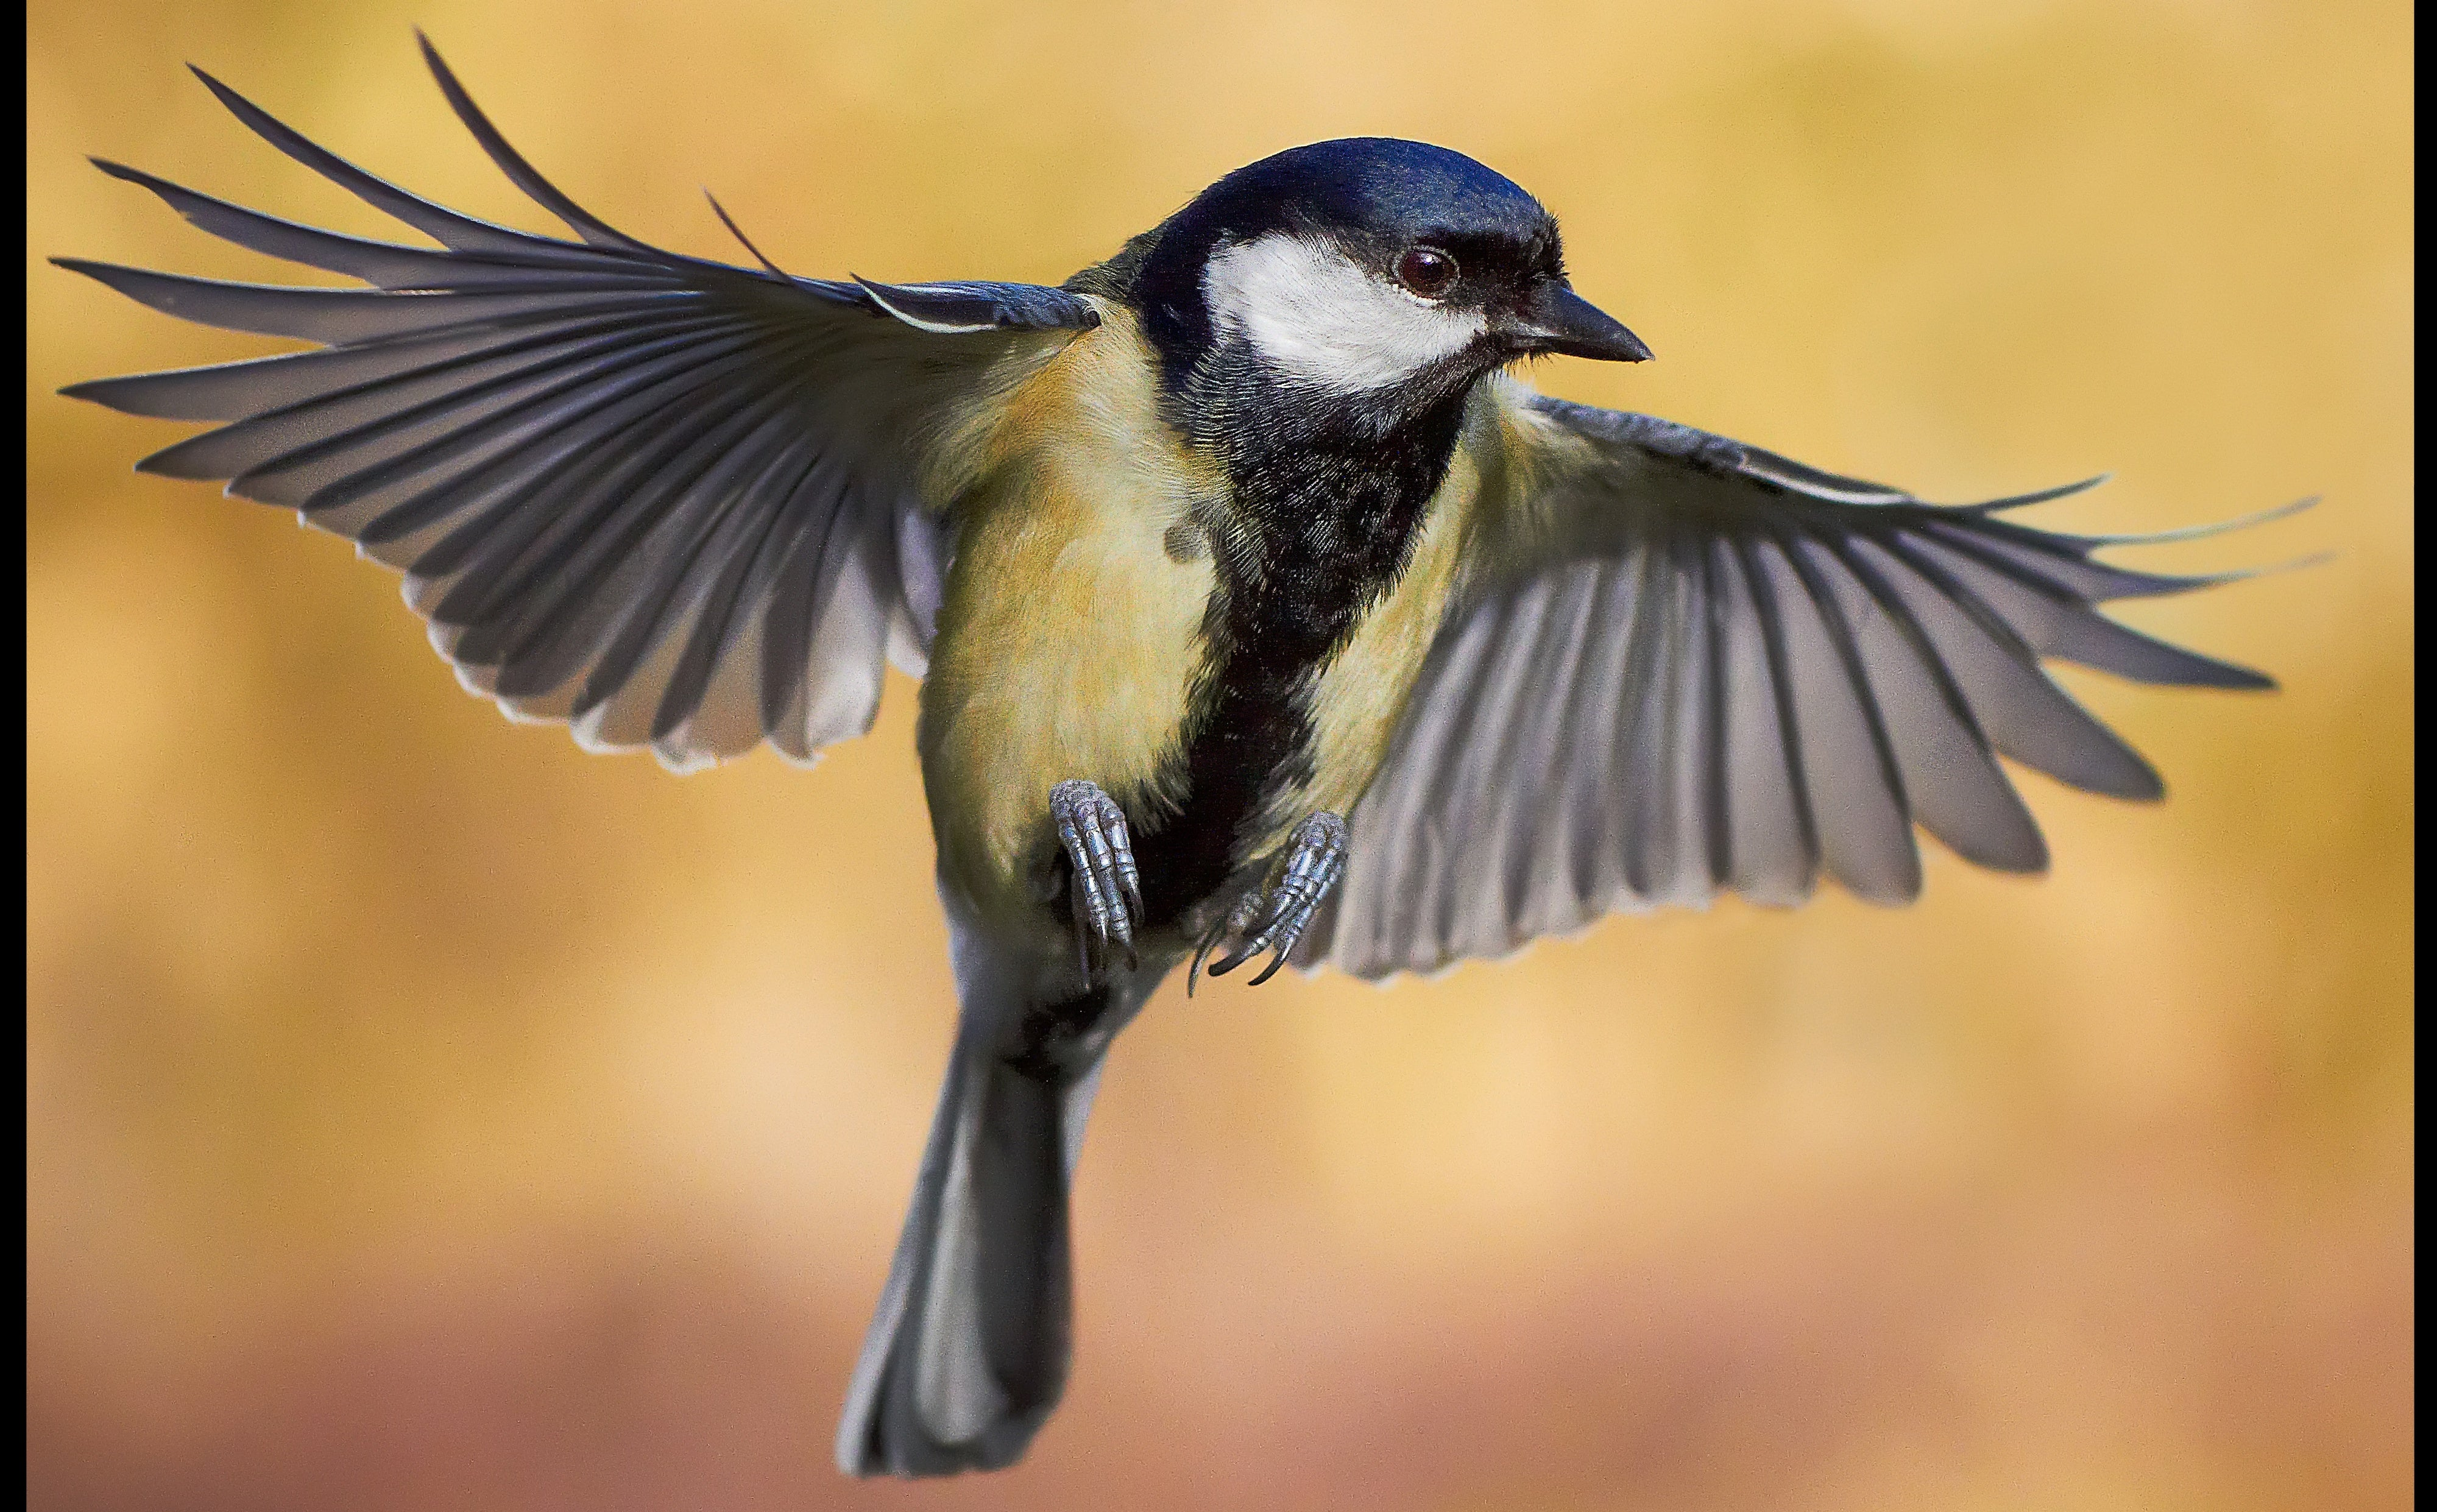 Bird Images Wallpaper And Free Download